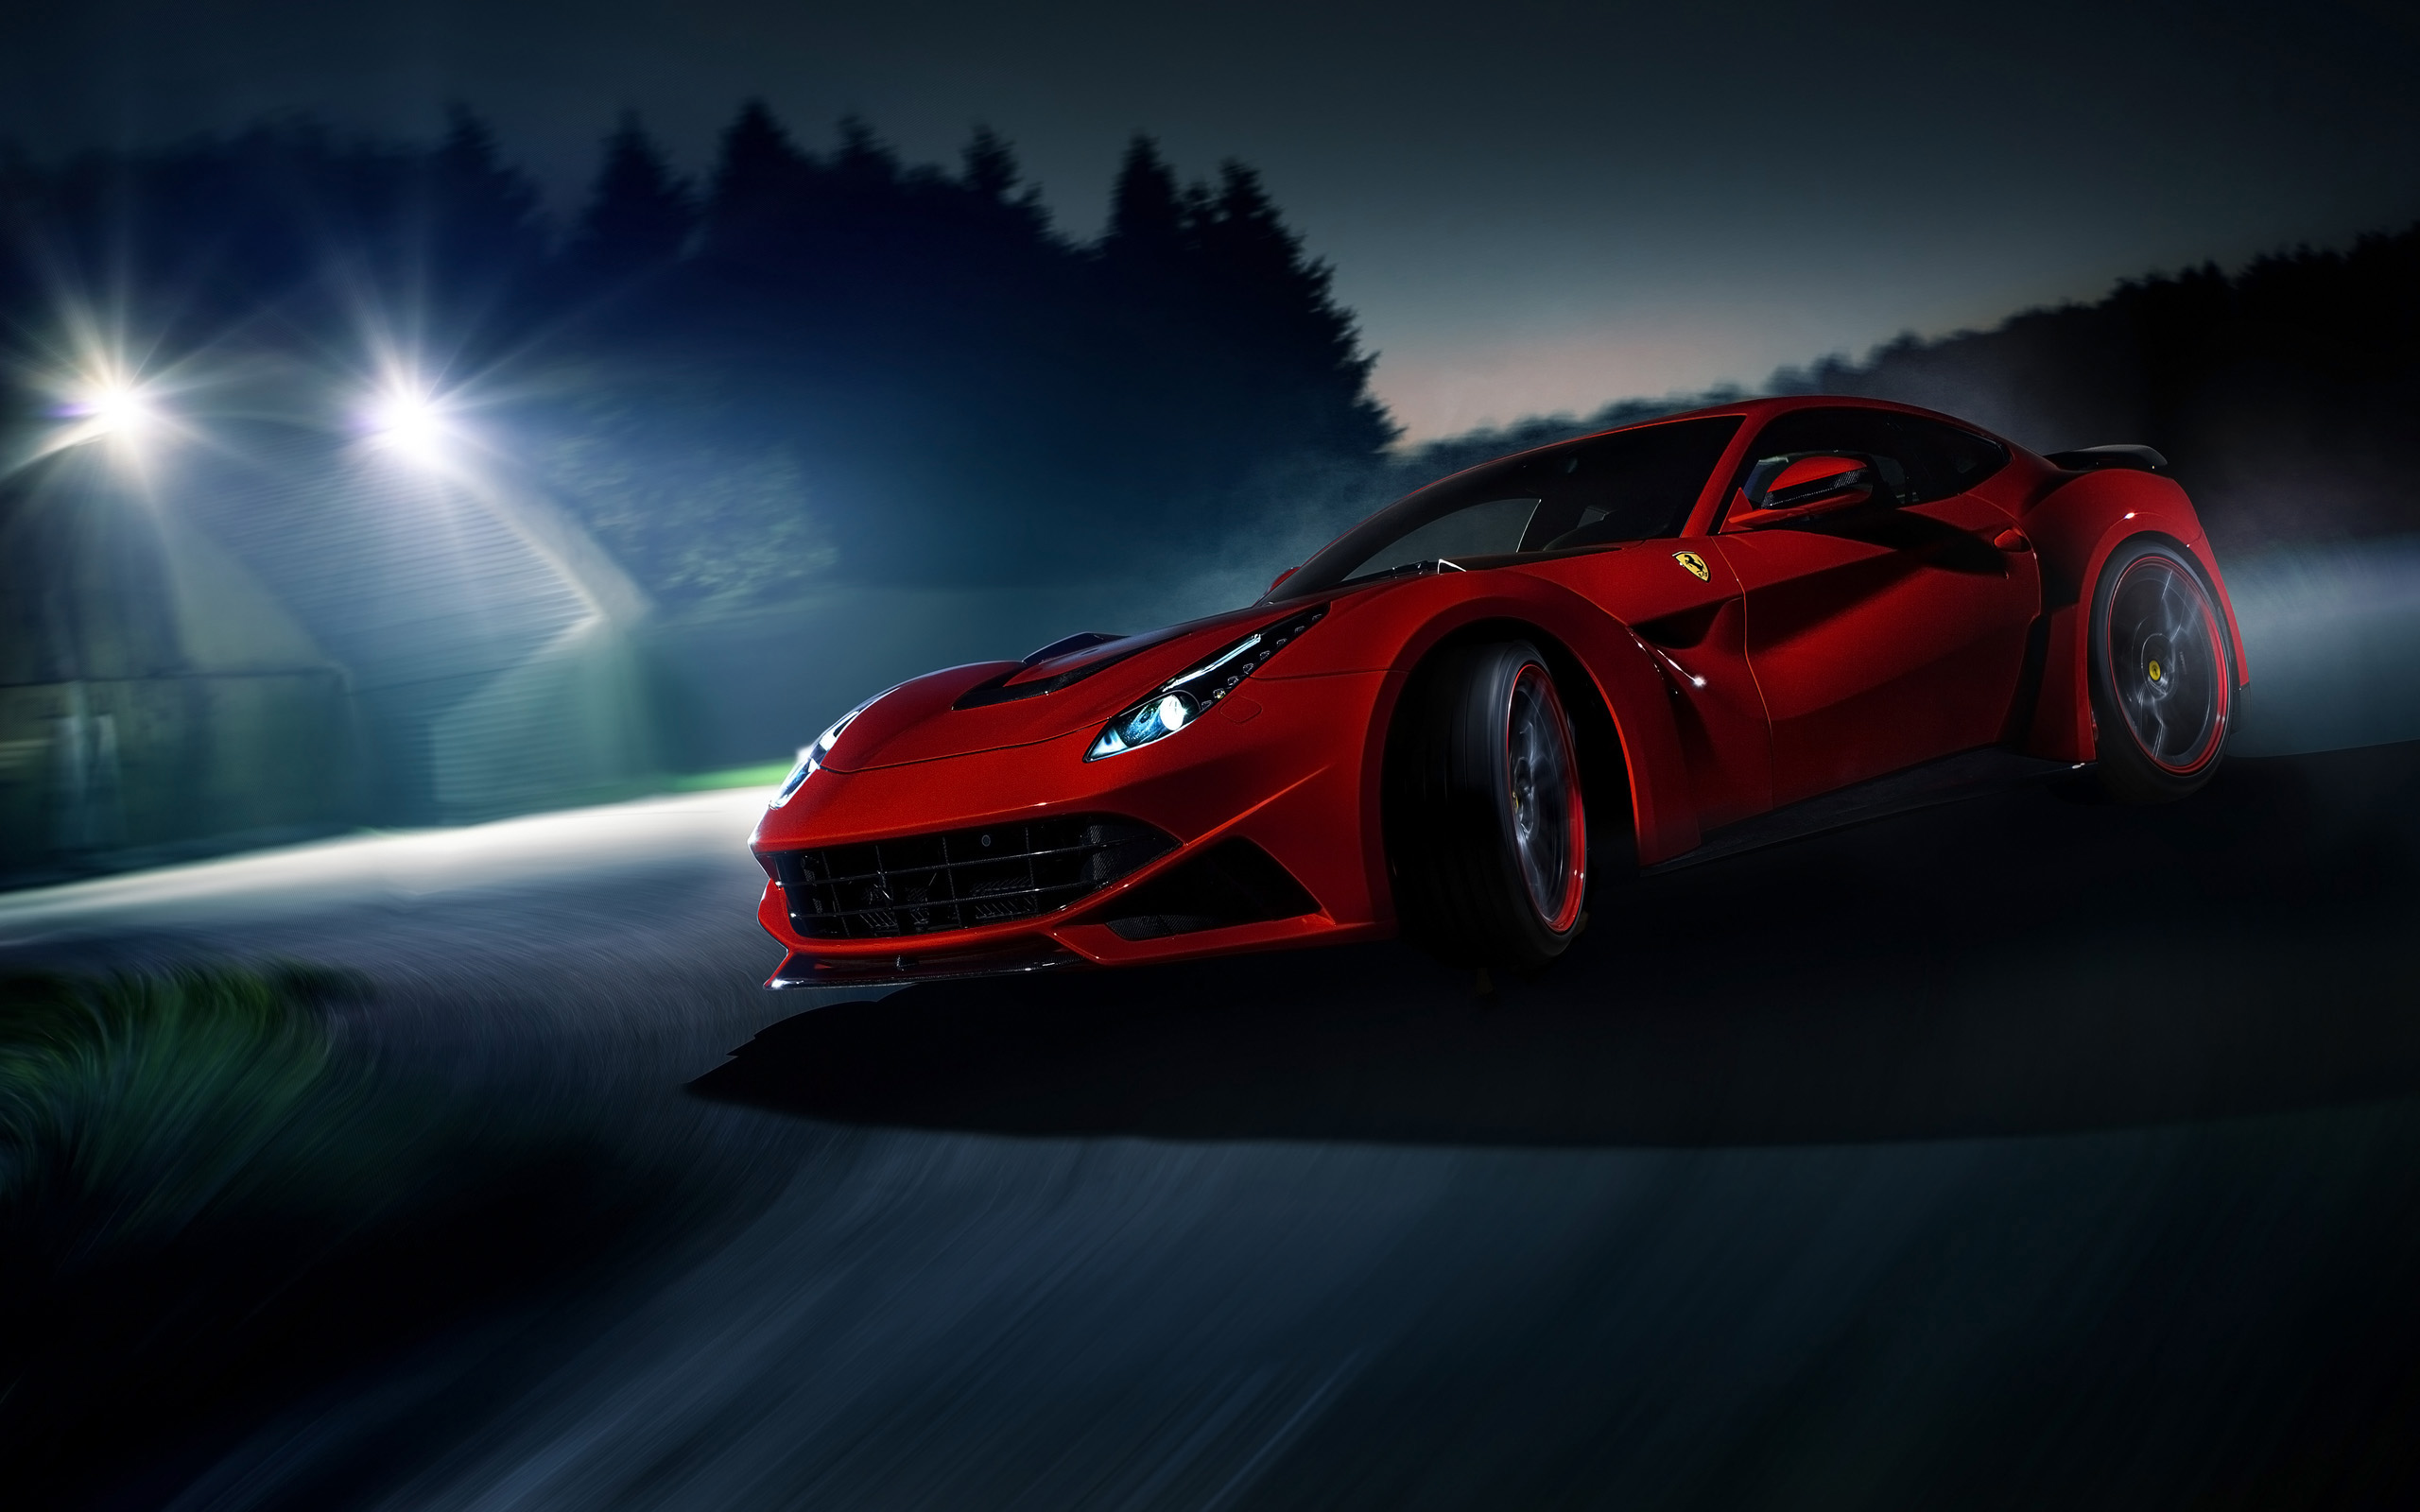 download image ferrari wallpapers - photo #38